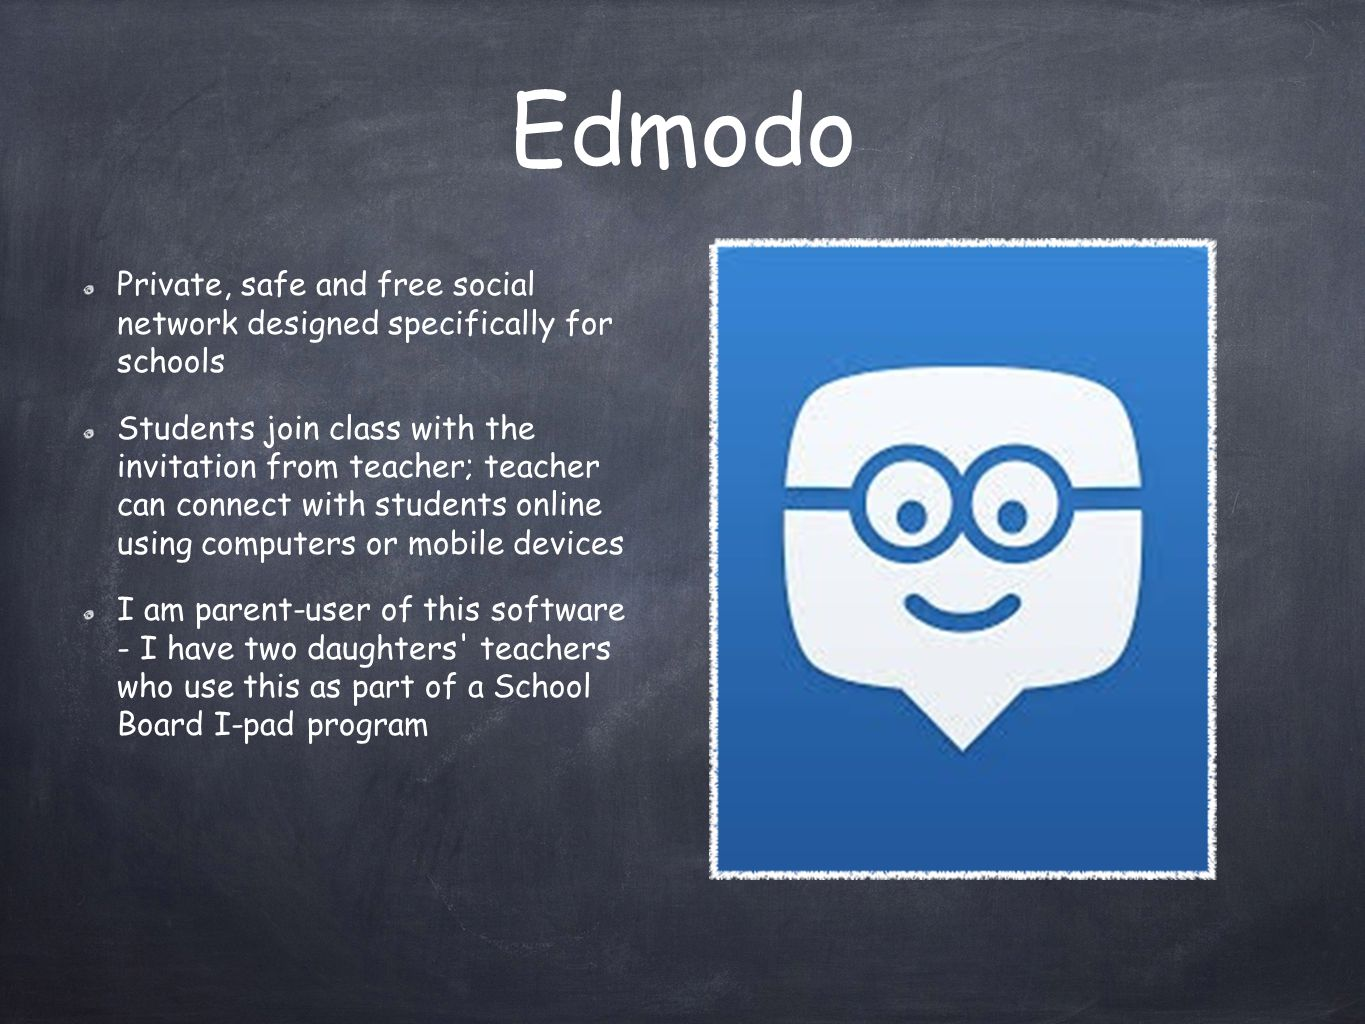 Edmodo Private, safe and free social network designed specifically for schools Students join class with the invitation from teacher; teacher can connect with students online using computers or mobile devices I am parent-user of this software - I have two daughters teachers who use this as part of a School Board I-pad program